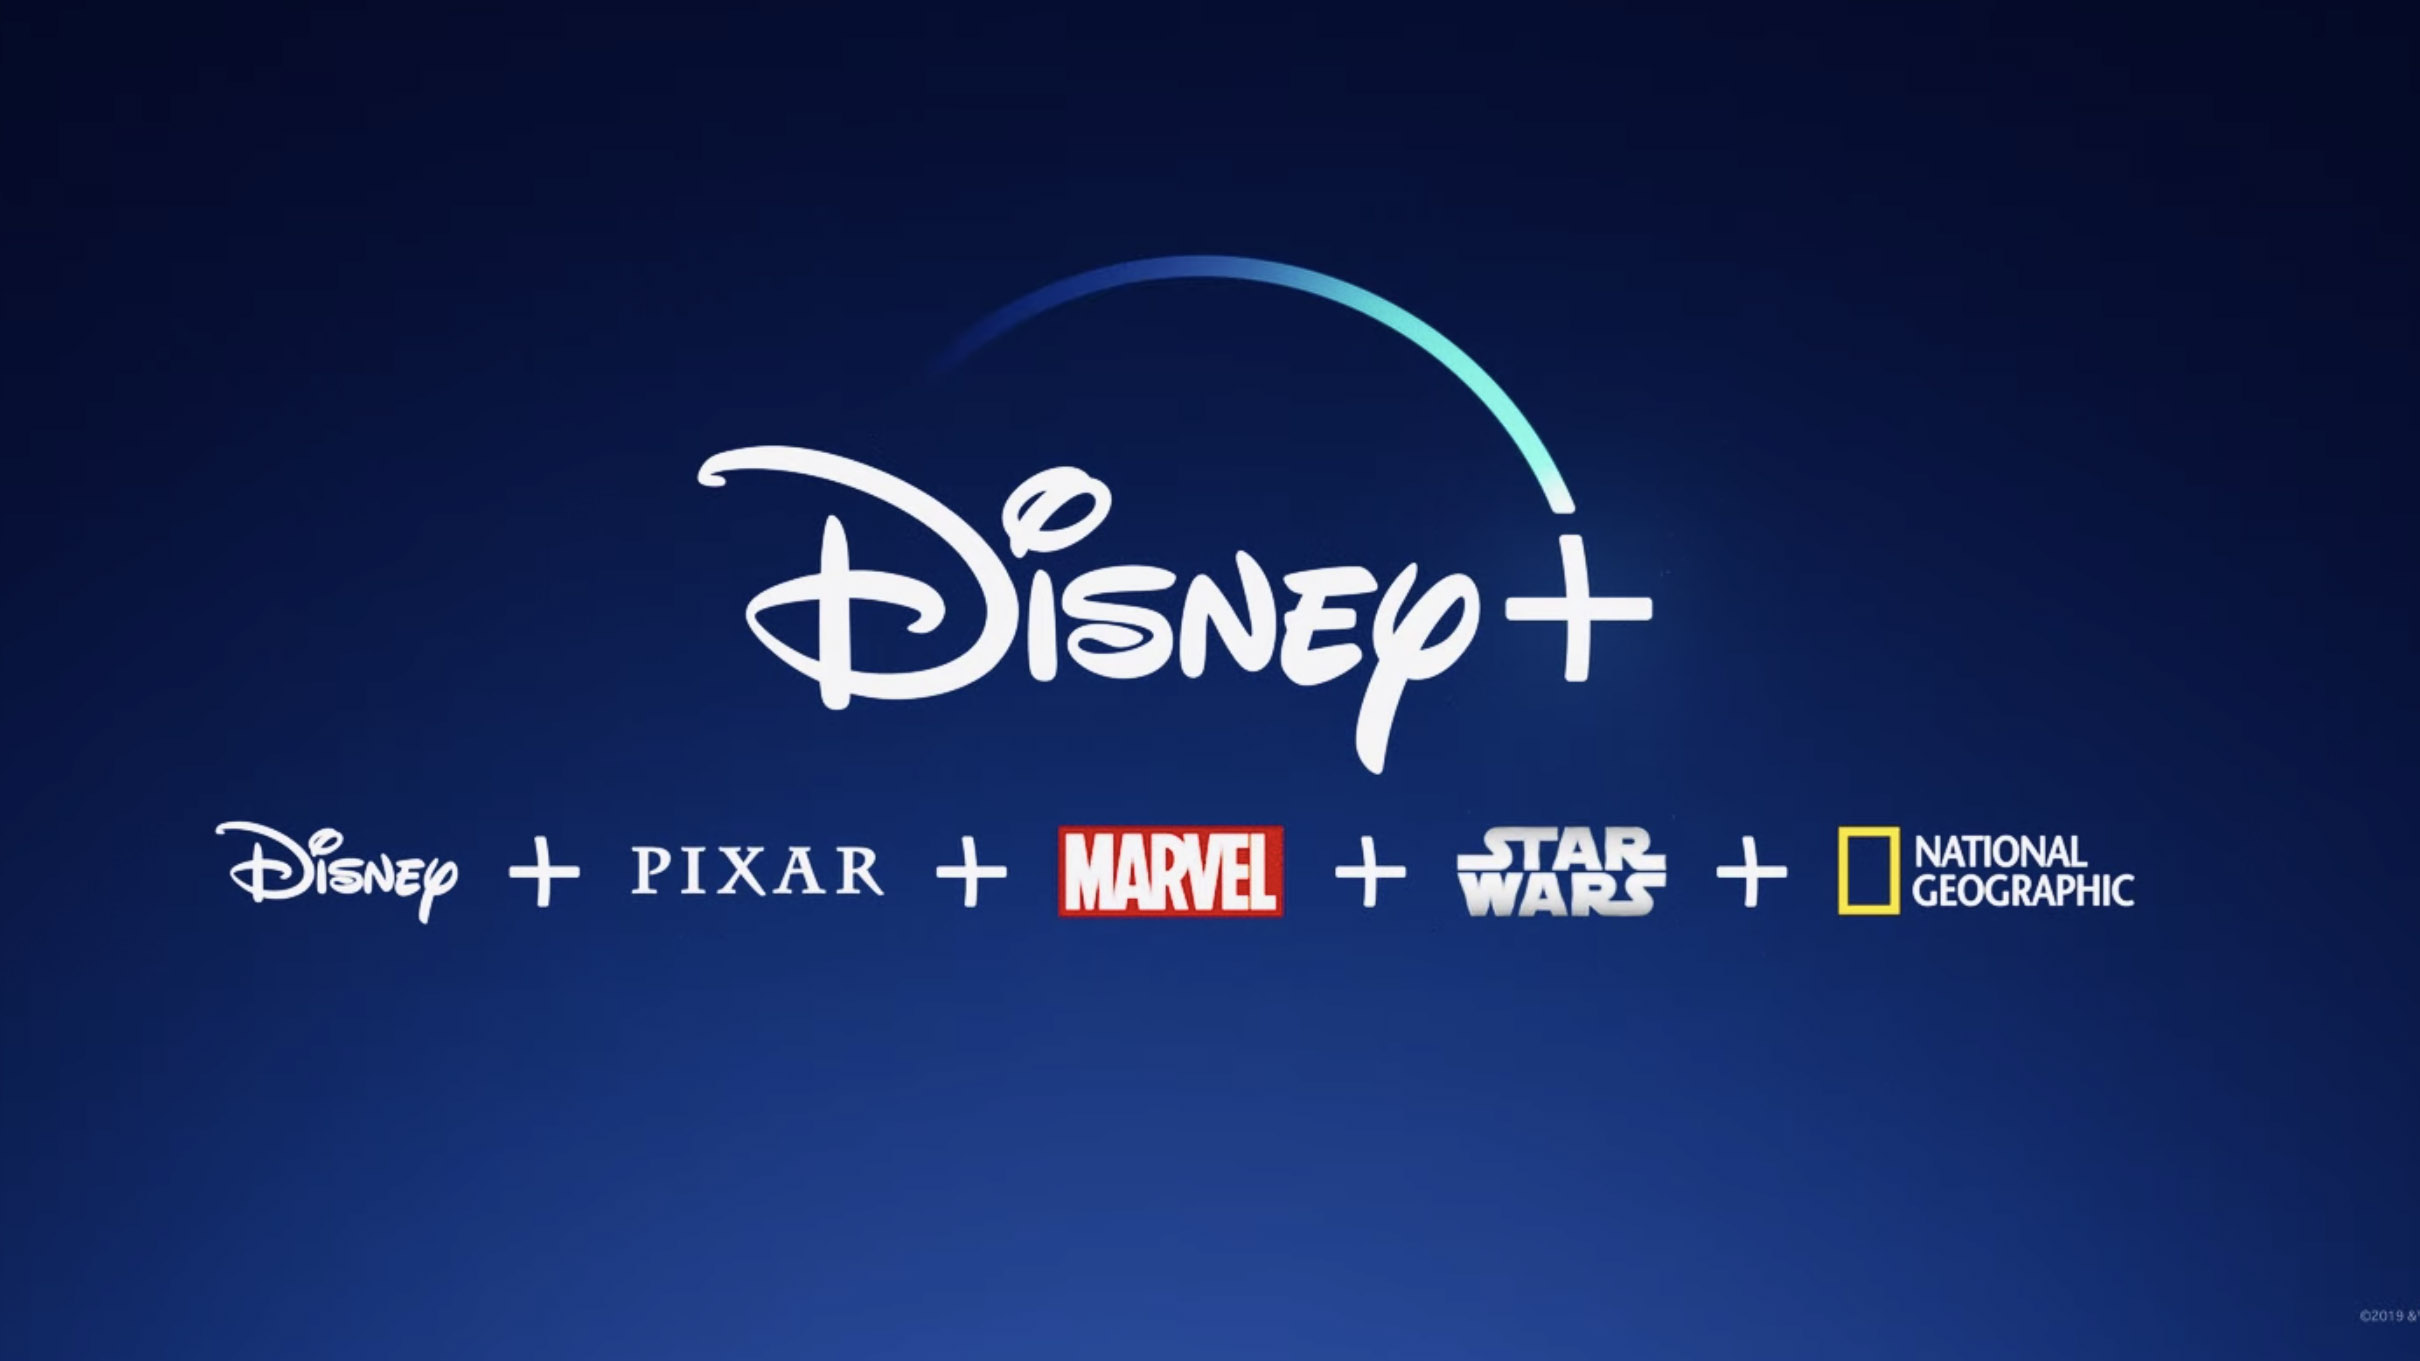 Disney+ Streaming Service , great gift for Star Wars fans